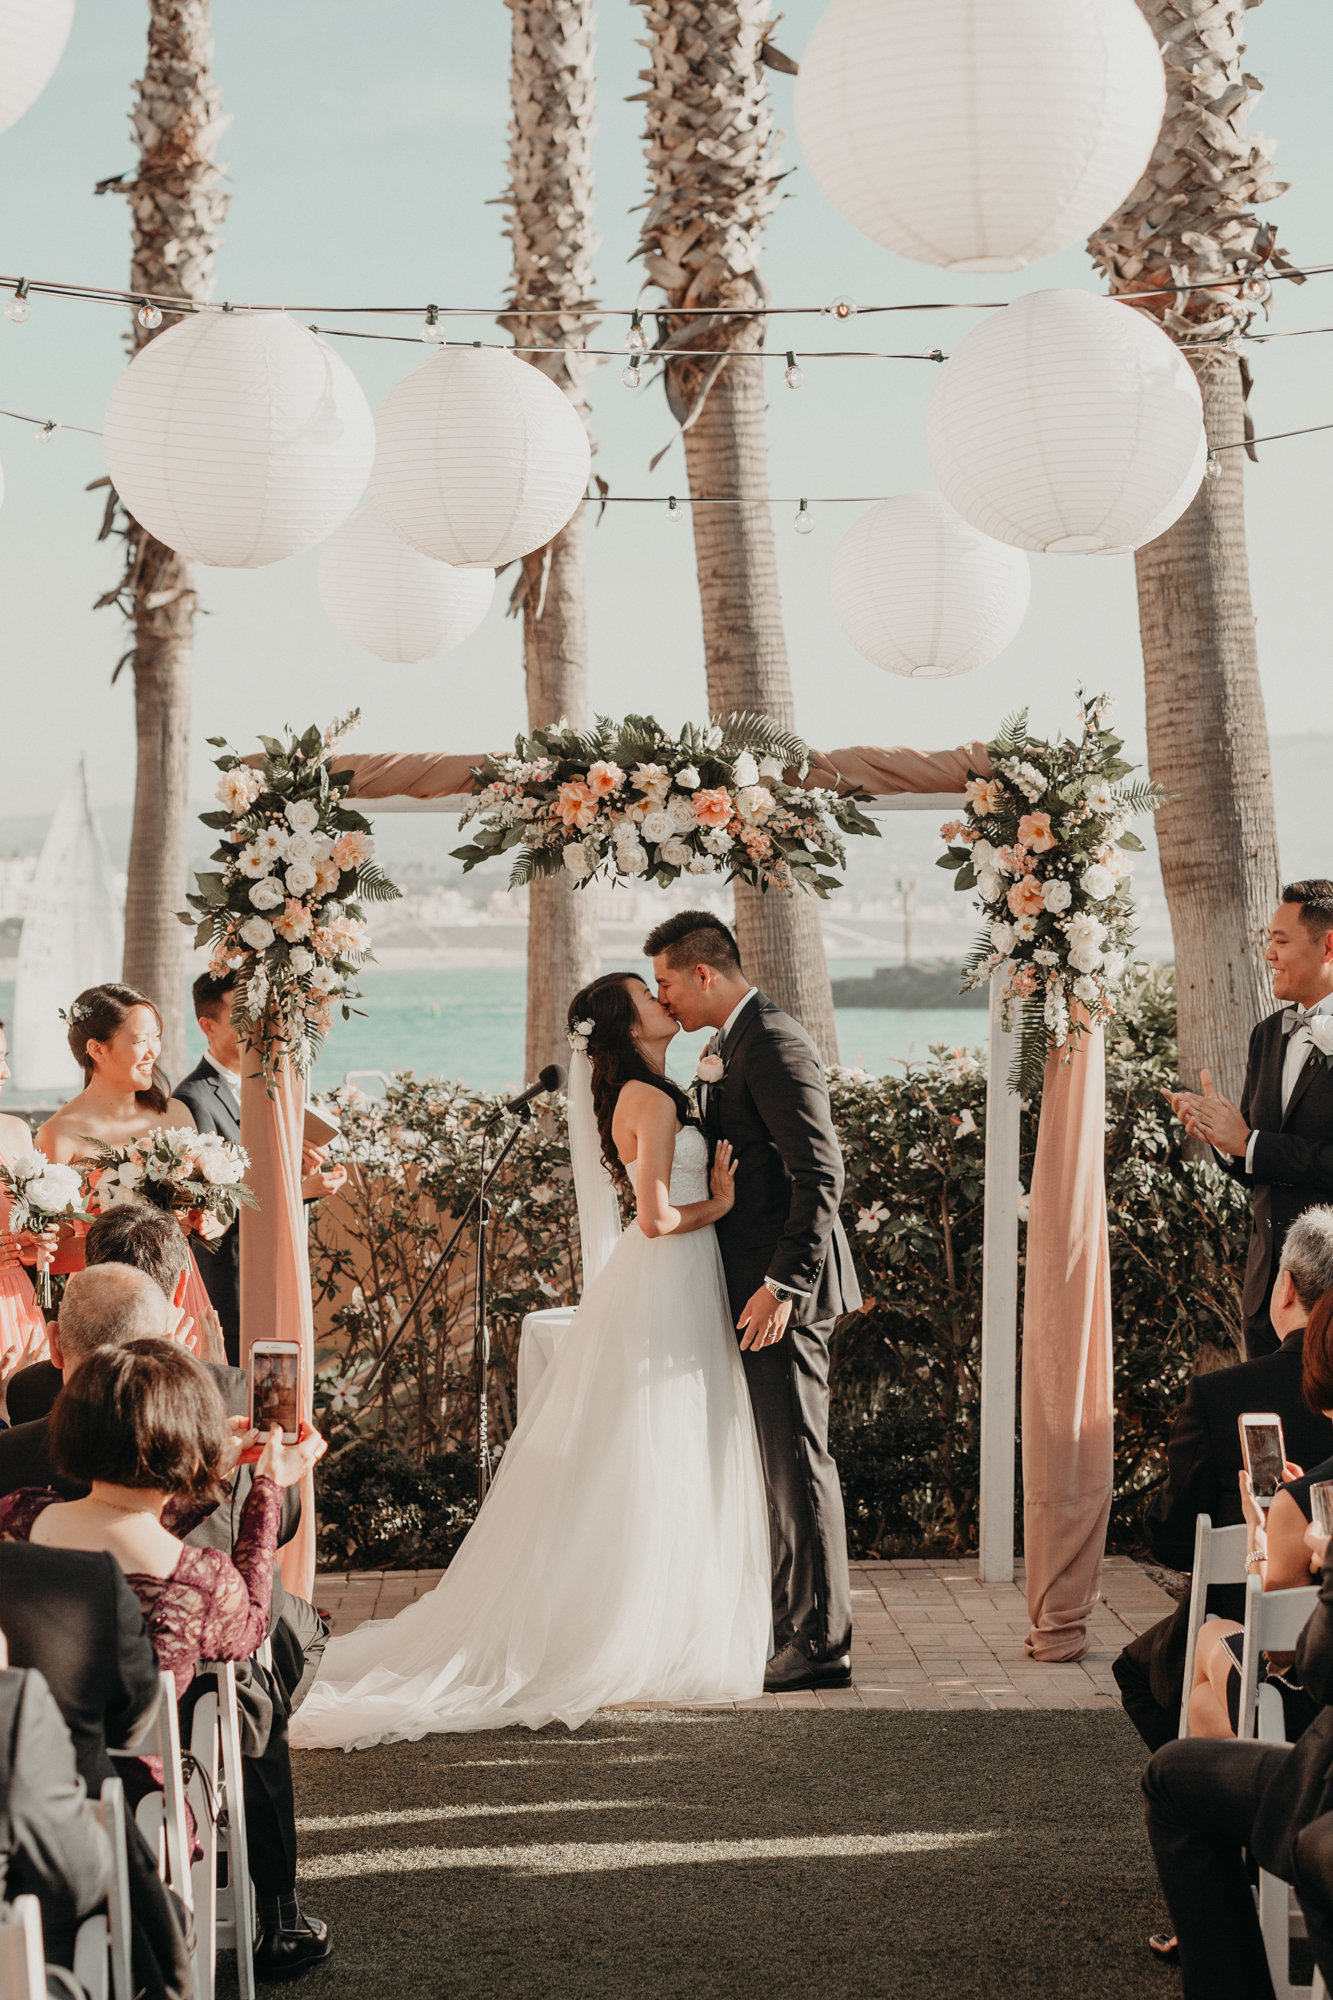 Taylor and Timothy-Ceremony-the kiss.jpg